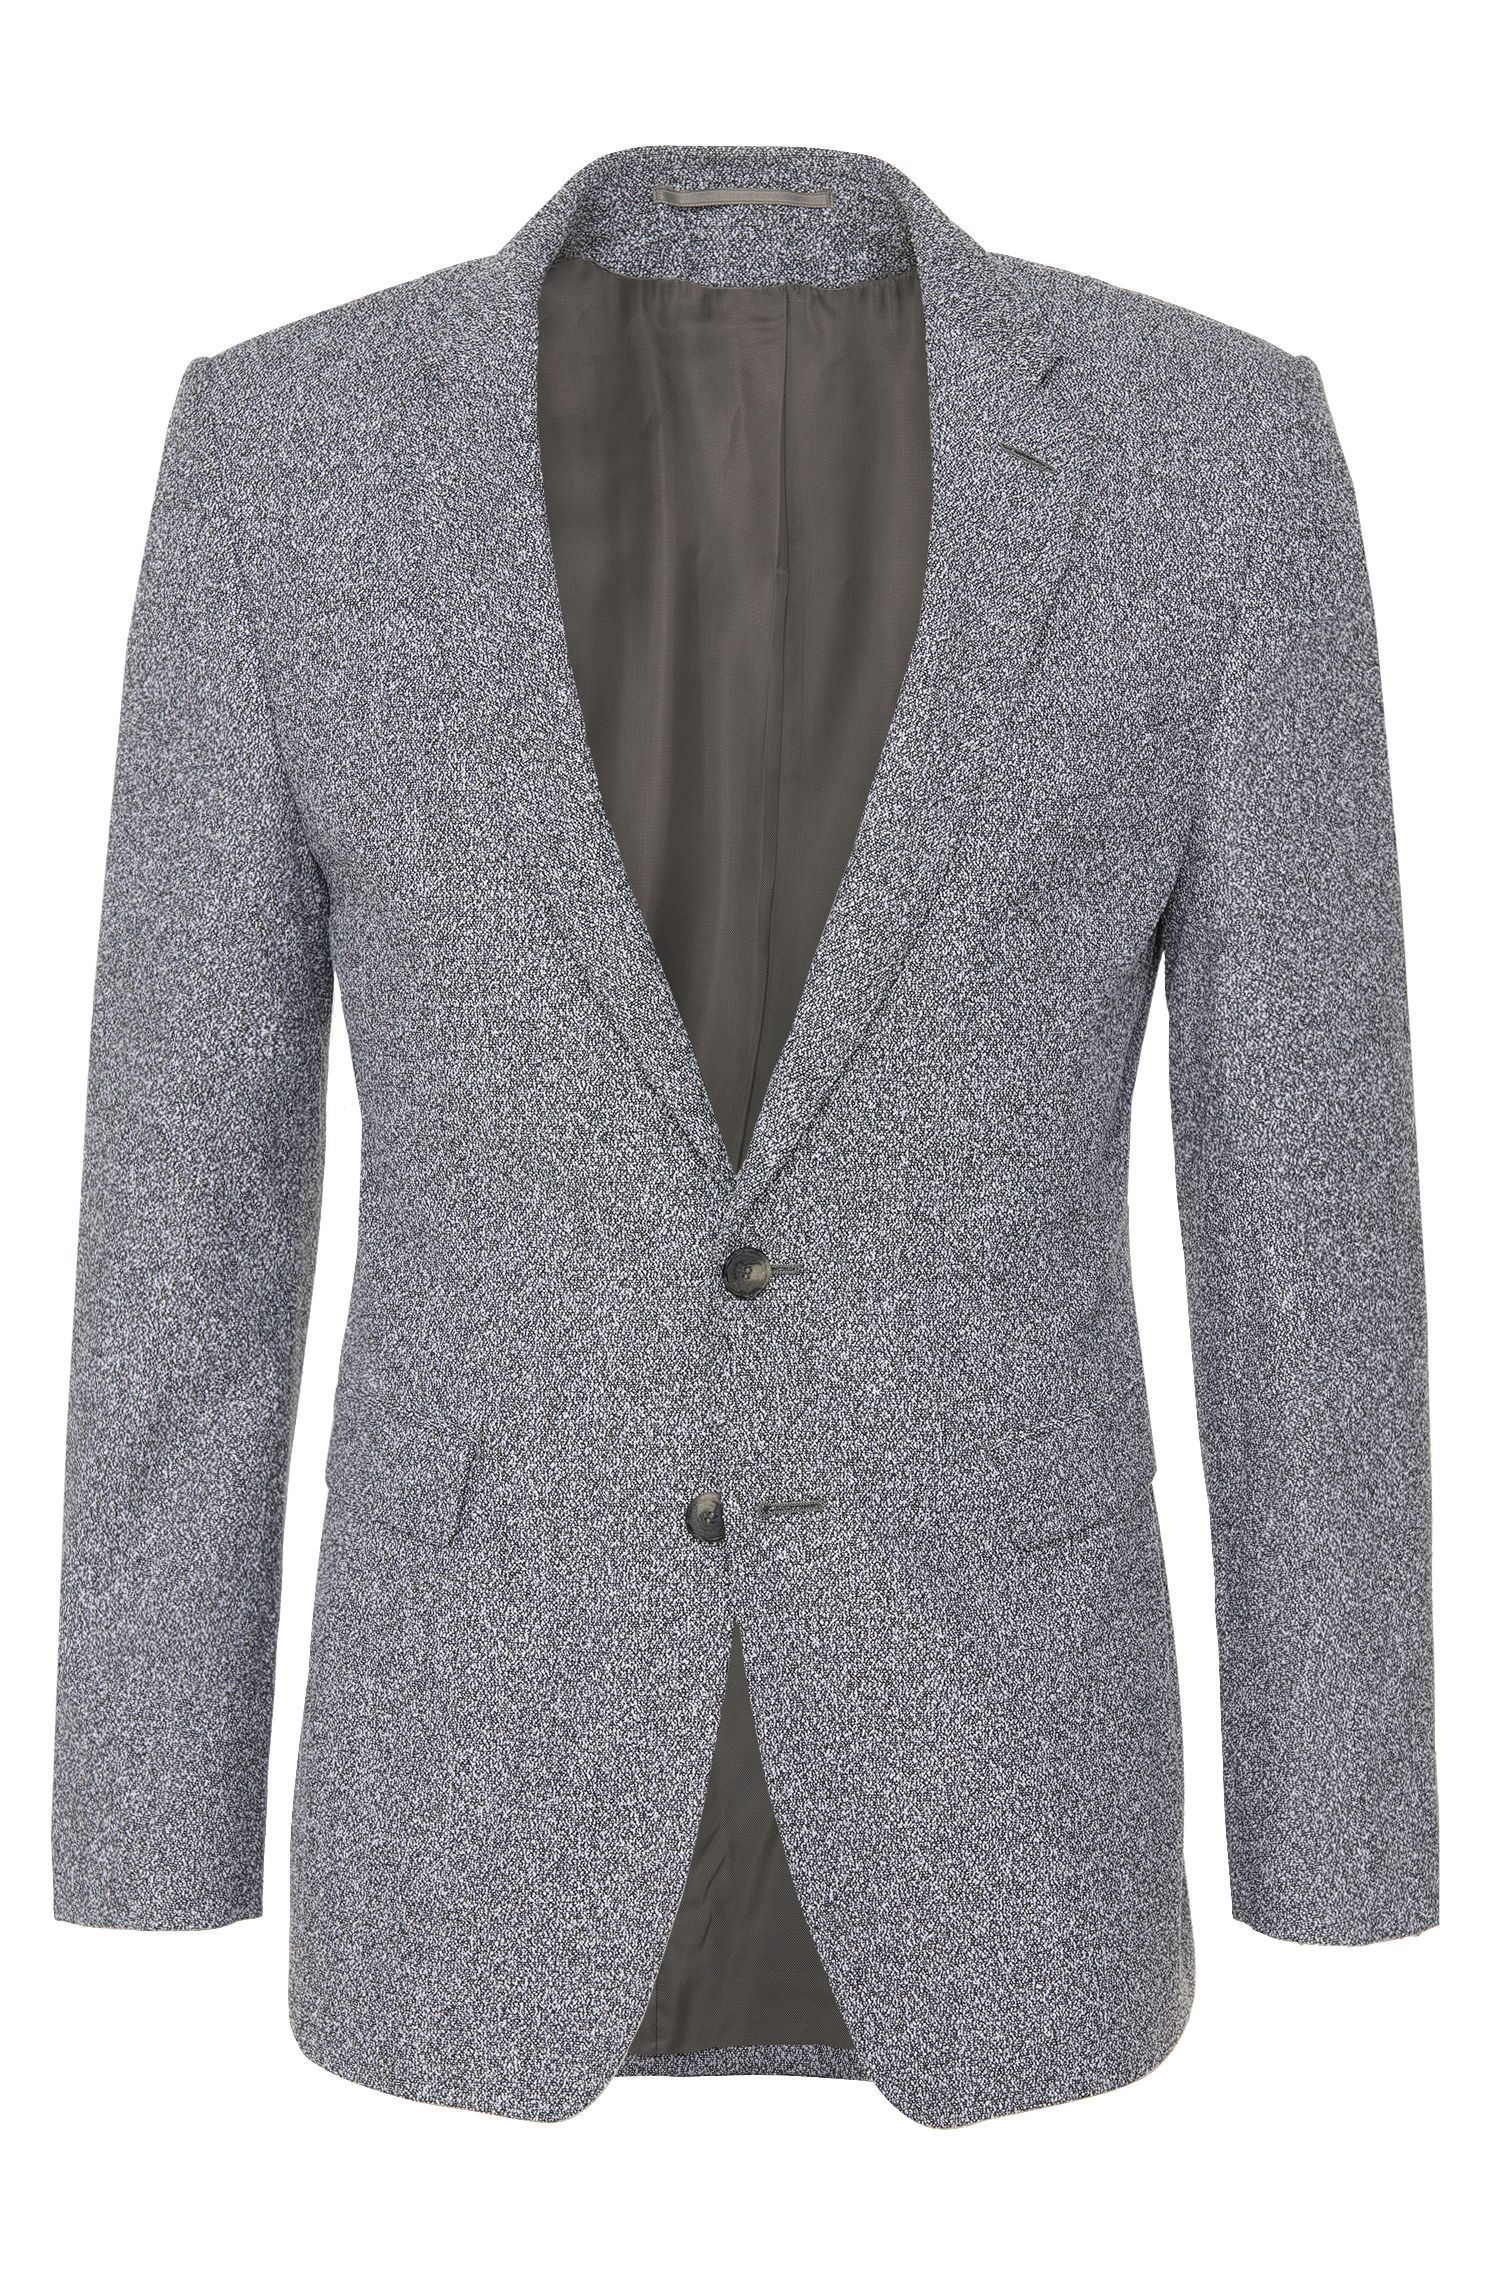 'T-Raven' | Extra Slim Fit, Italian Virgin Wool Cotton Blend Sport Coat